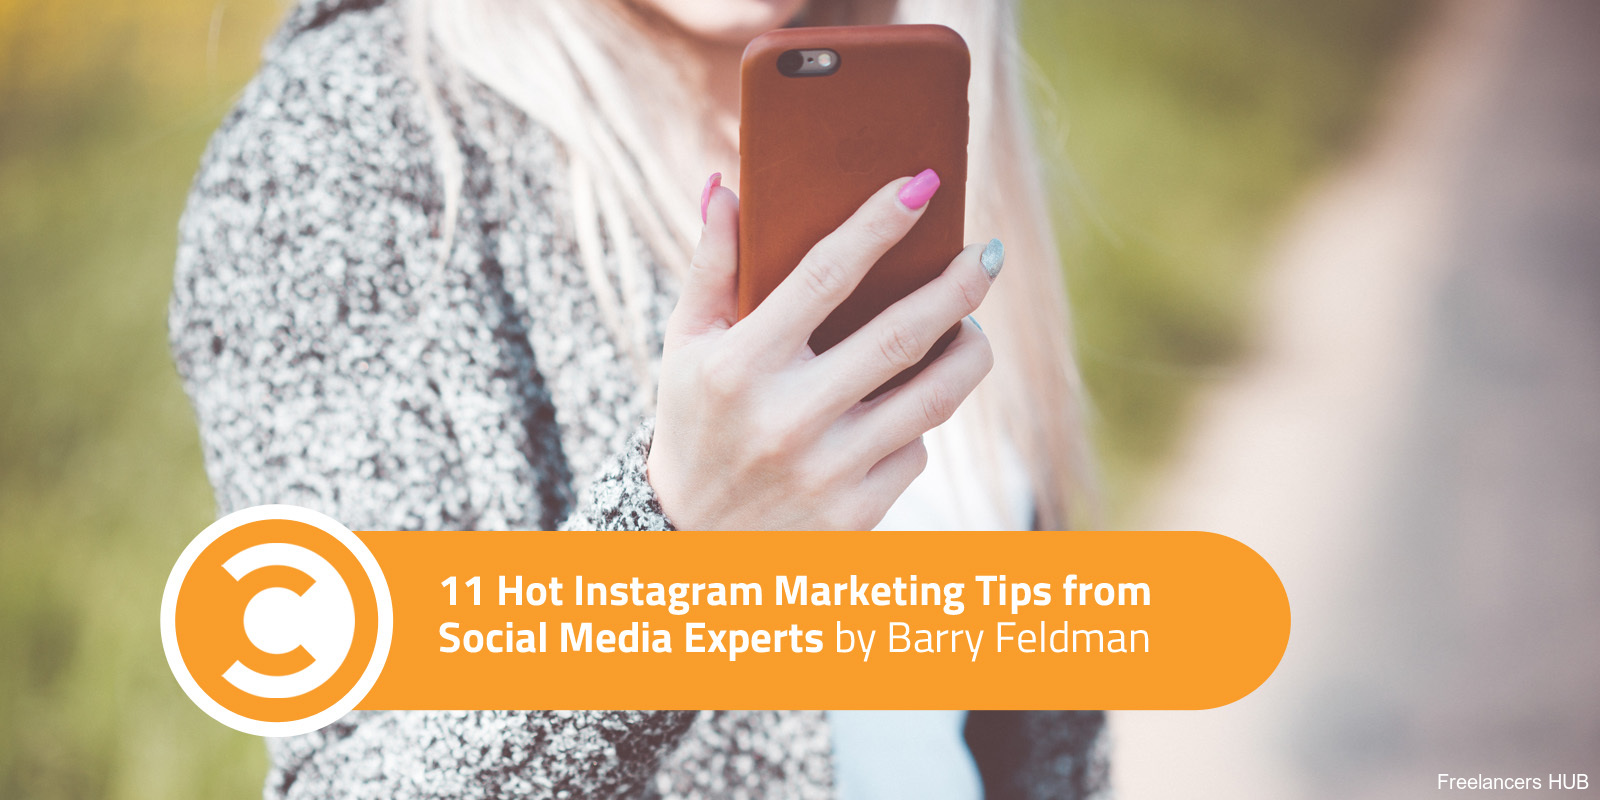 11 Hot Instagram Marketing Tips from Social Media Experts